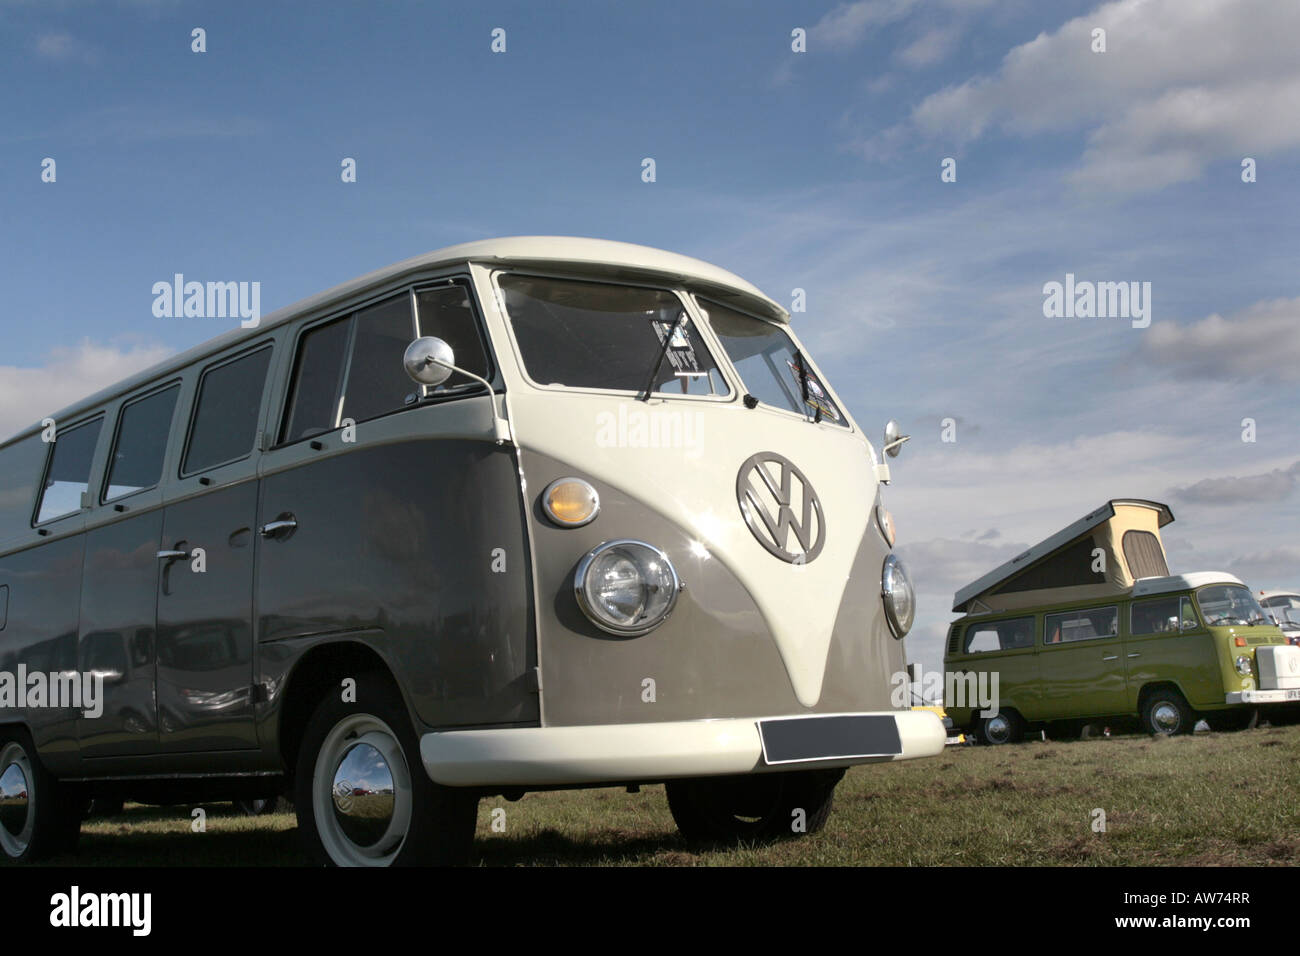 f91866f383aee6 The Volkswagen Kombi Camper Van is a utility vehicle that has achieved both  classic and cult status during its production